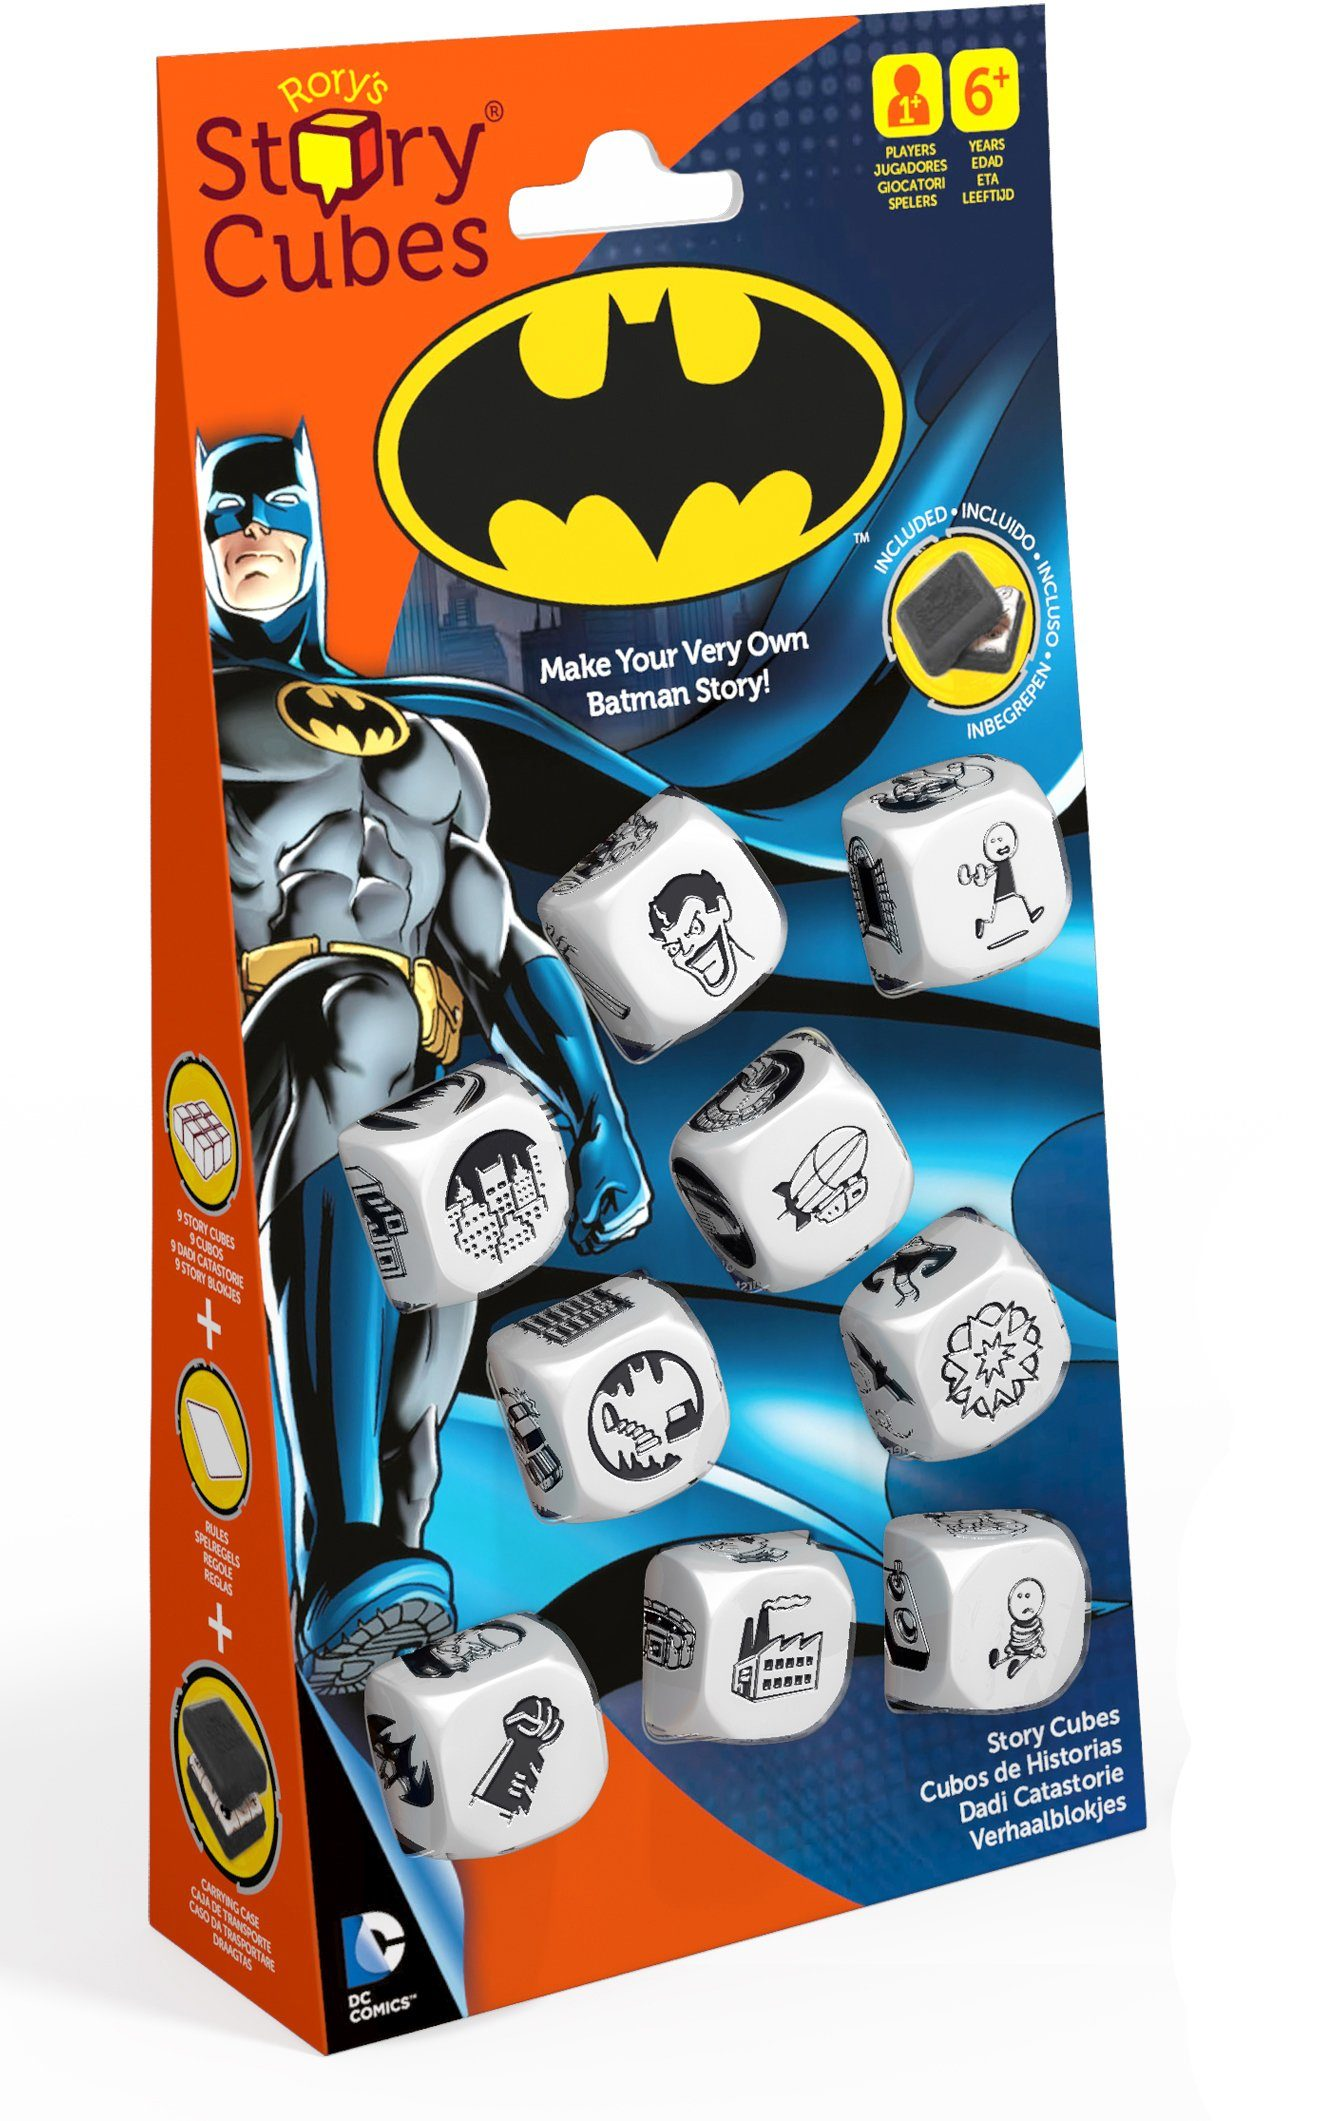 Hutter Trade Selection Würfelspiel, »Story Cubes Batman«